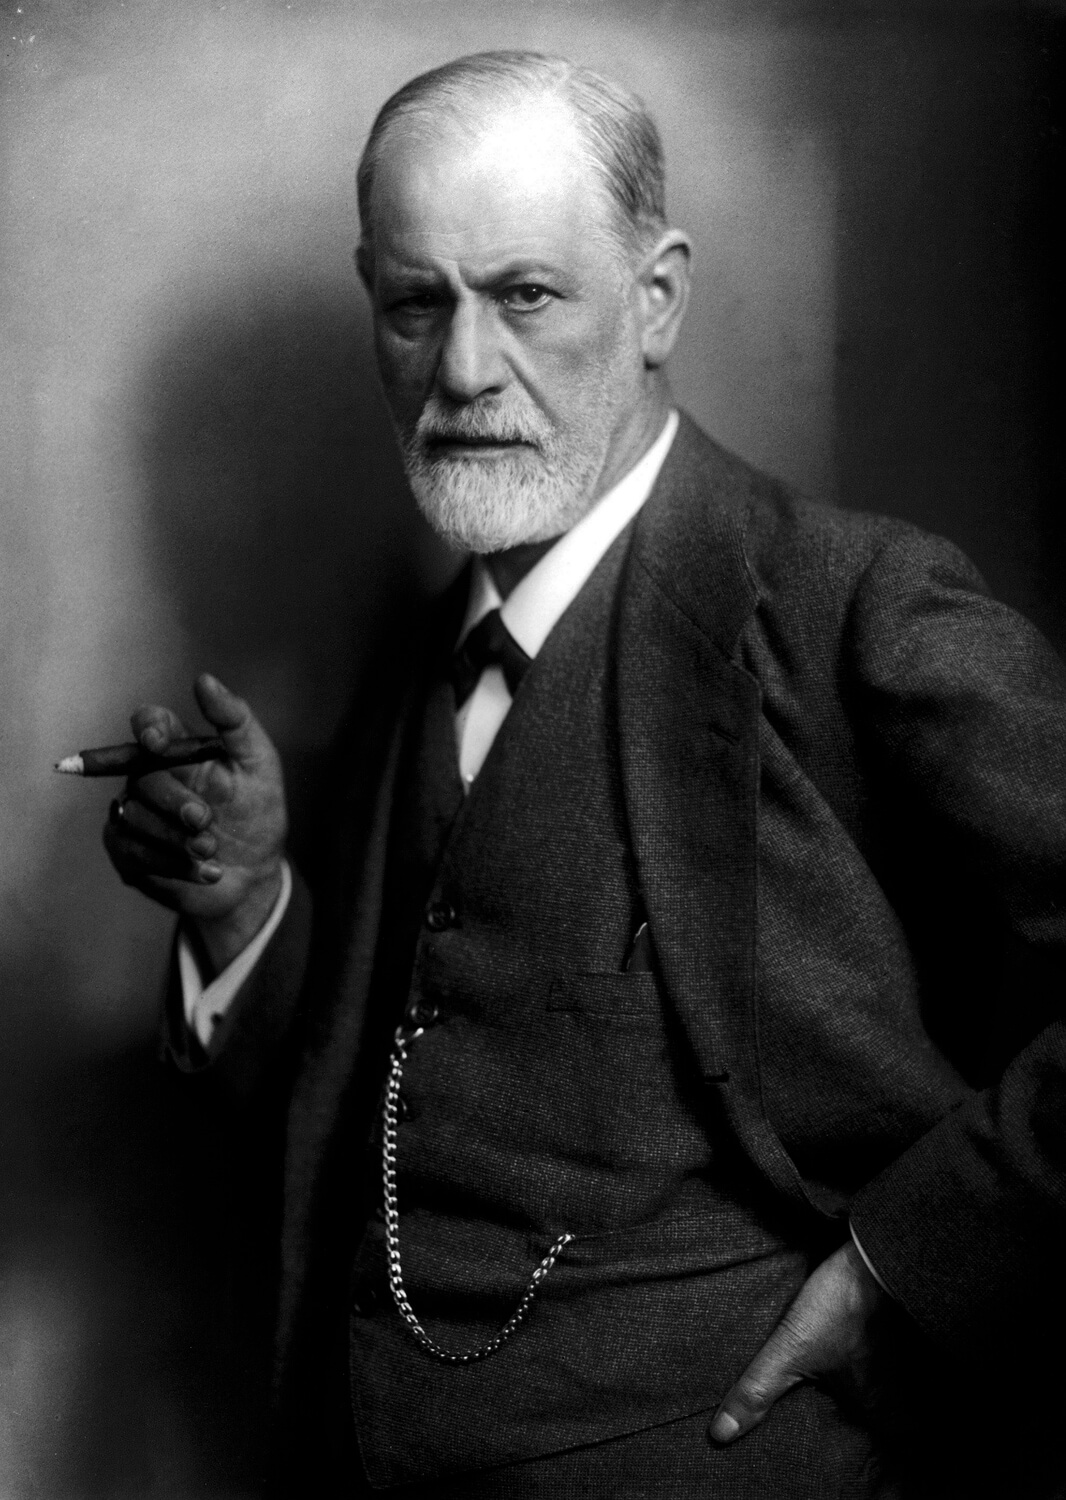 10 Must-Read Books That Changed The World - The Interpretation of Dreams by Sigmund Freud